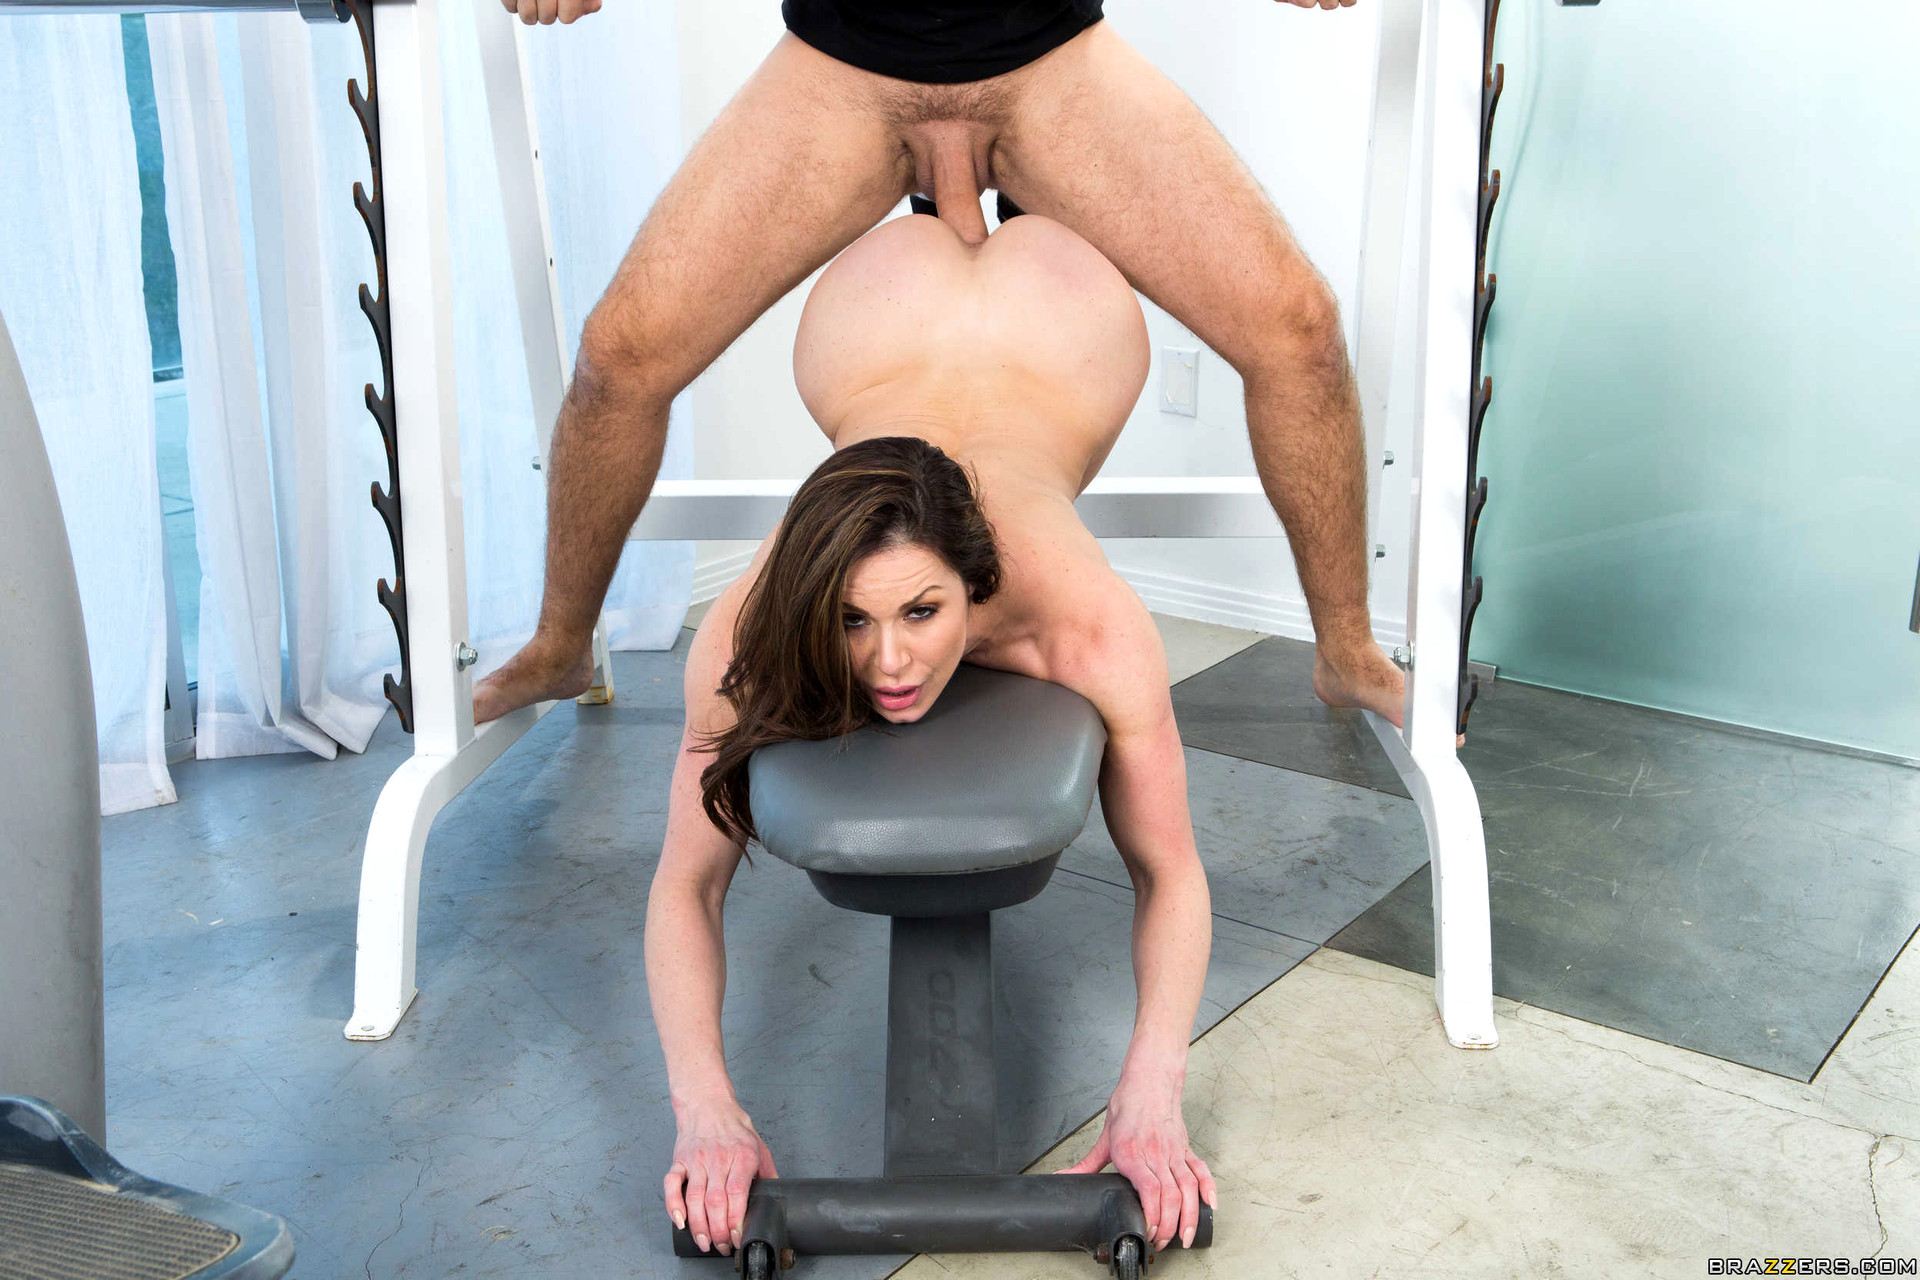 Sex with the wife on the workout bench